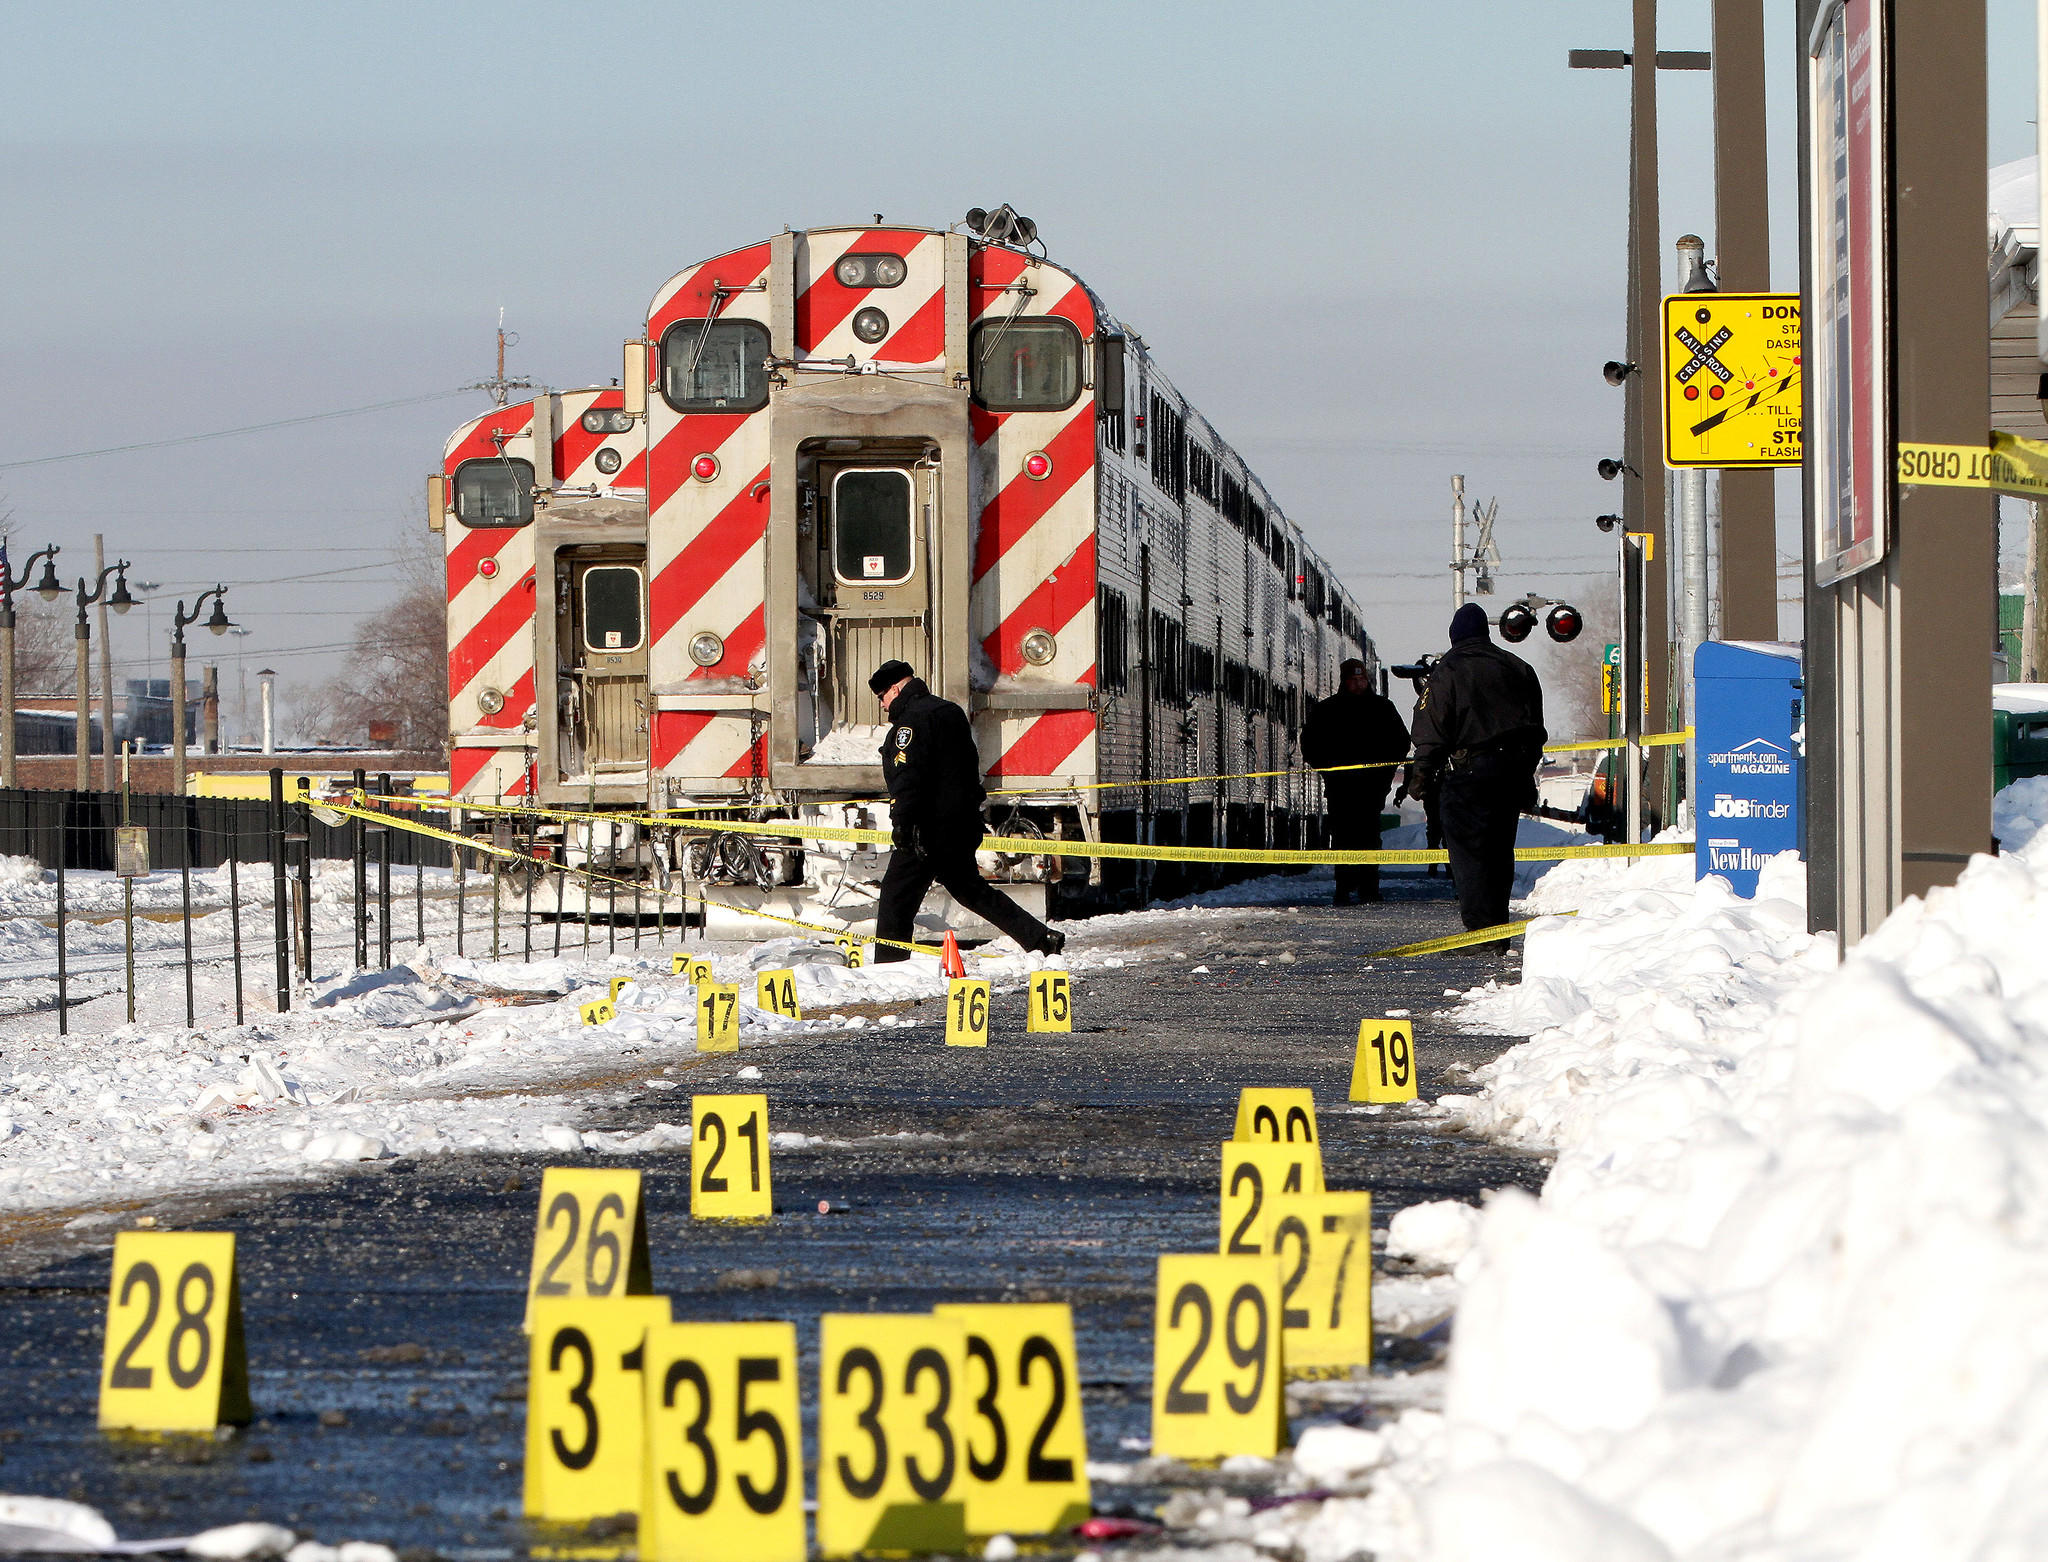 Metra police and Franklin Park police investigate the scene where a woman was struck and killed by an outbound Metra train.